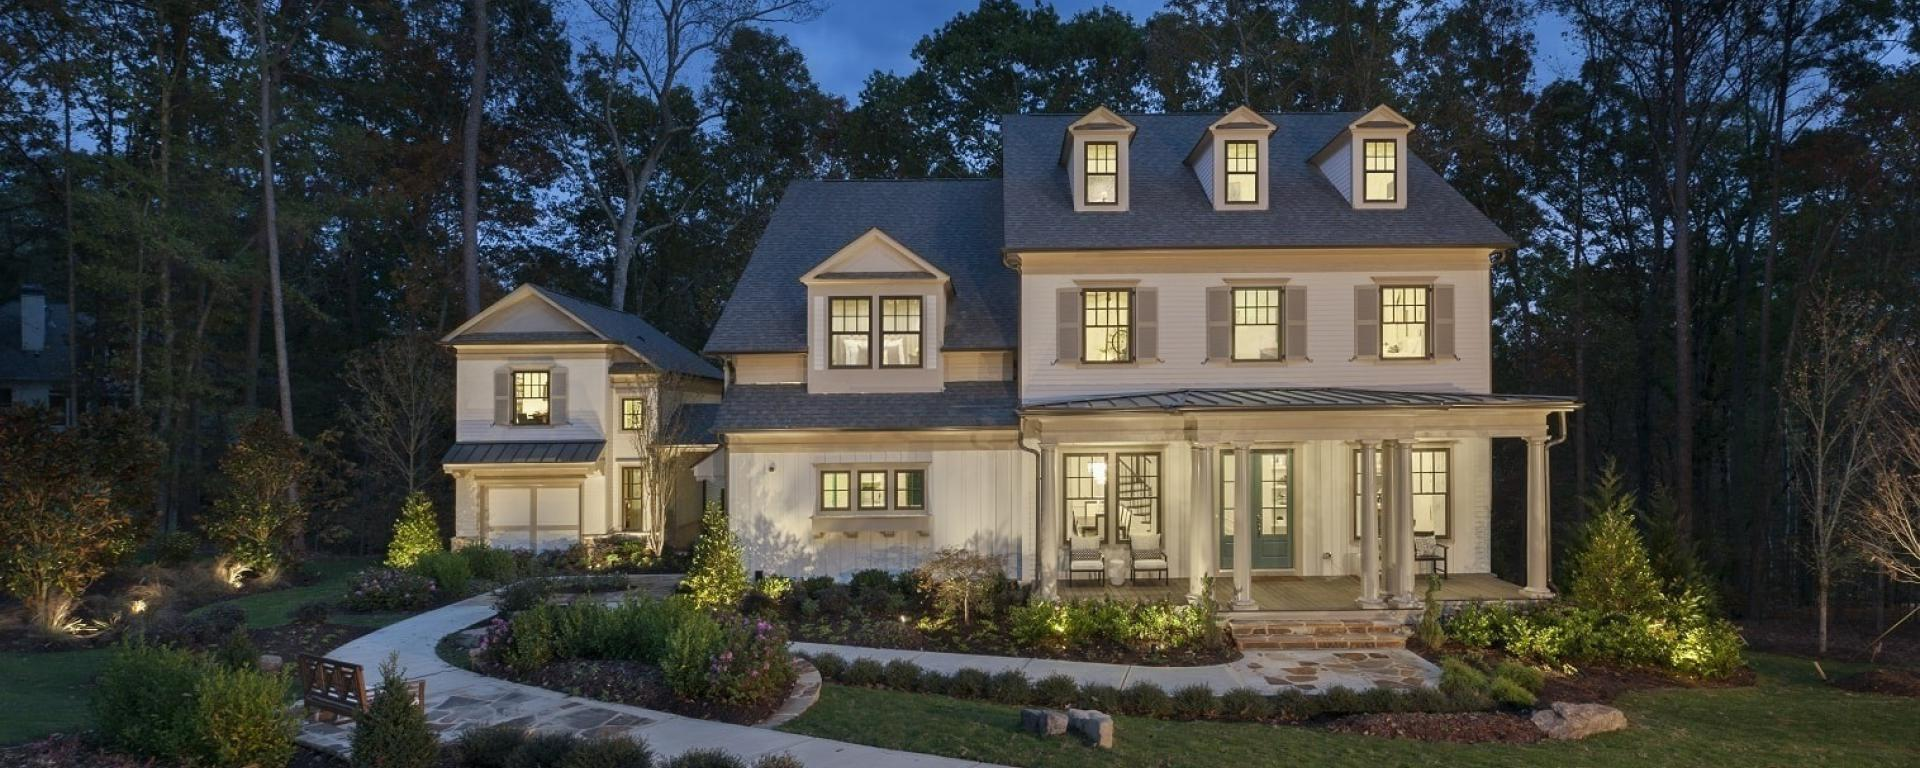 New Construction Homes Communities By Ashton Woods